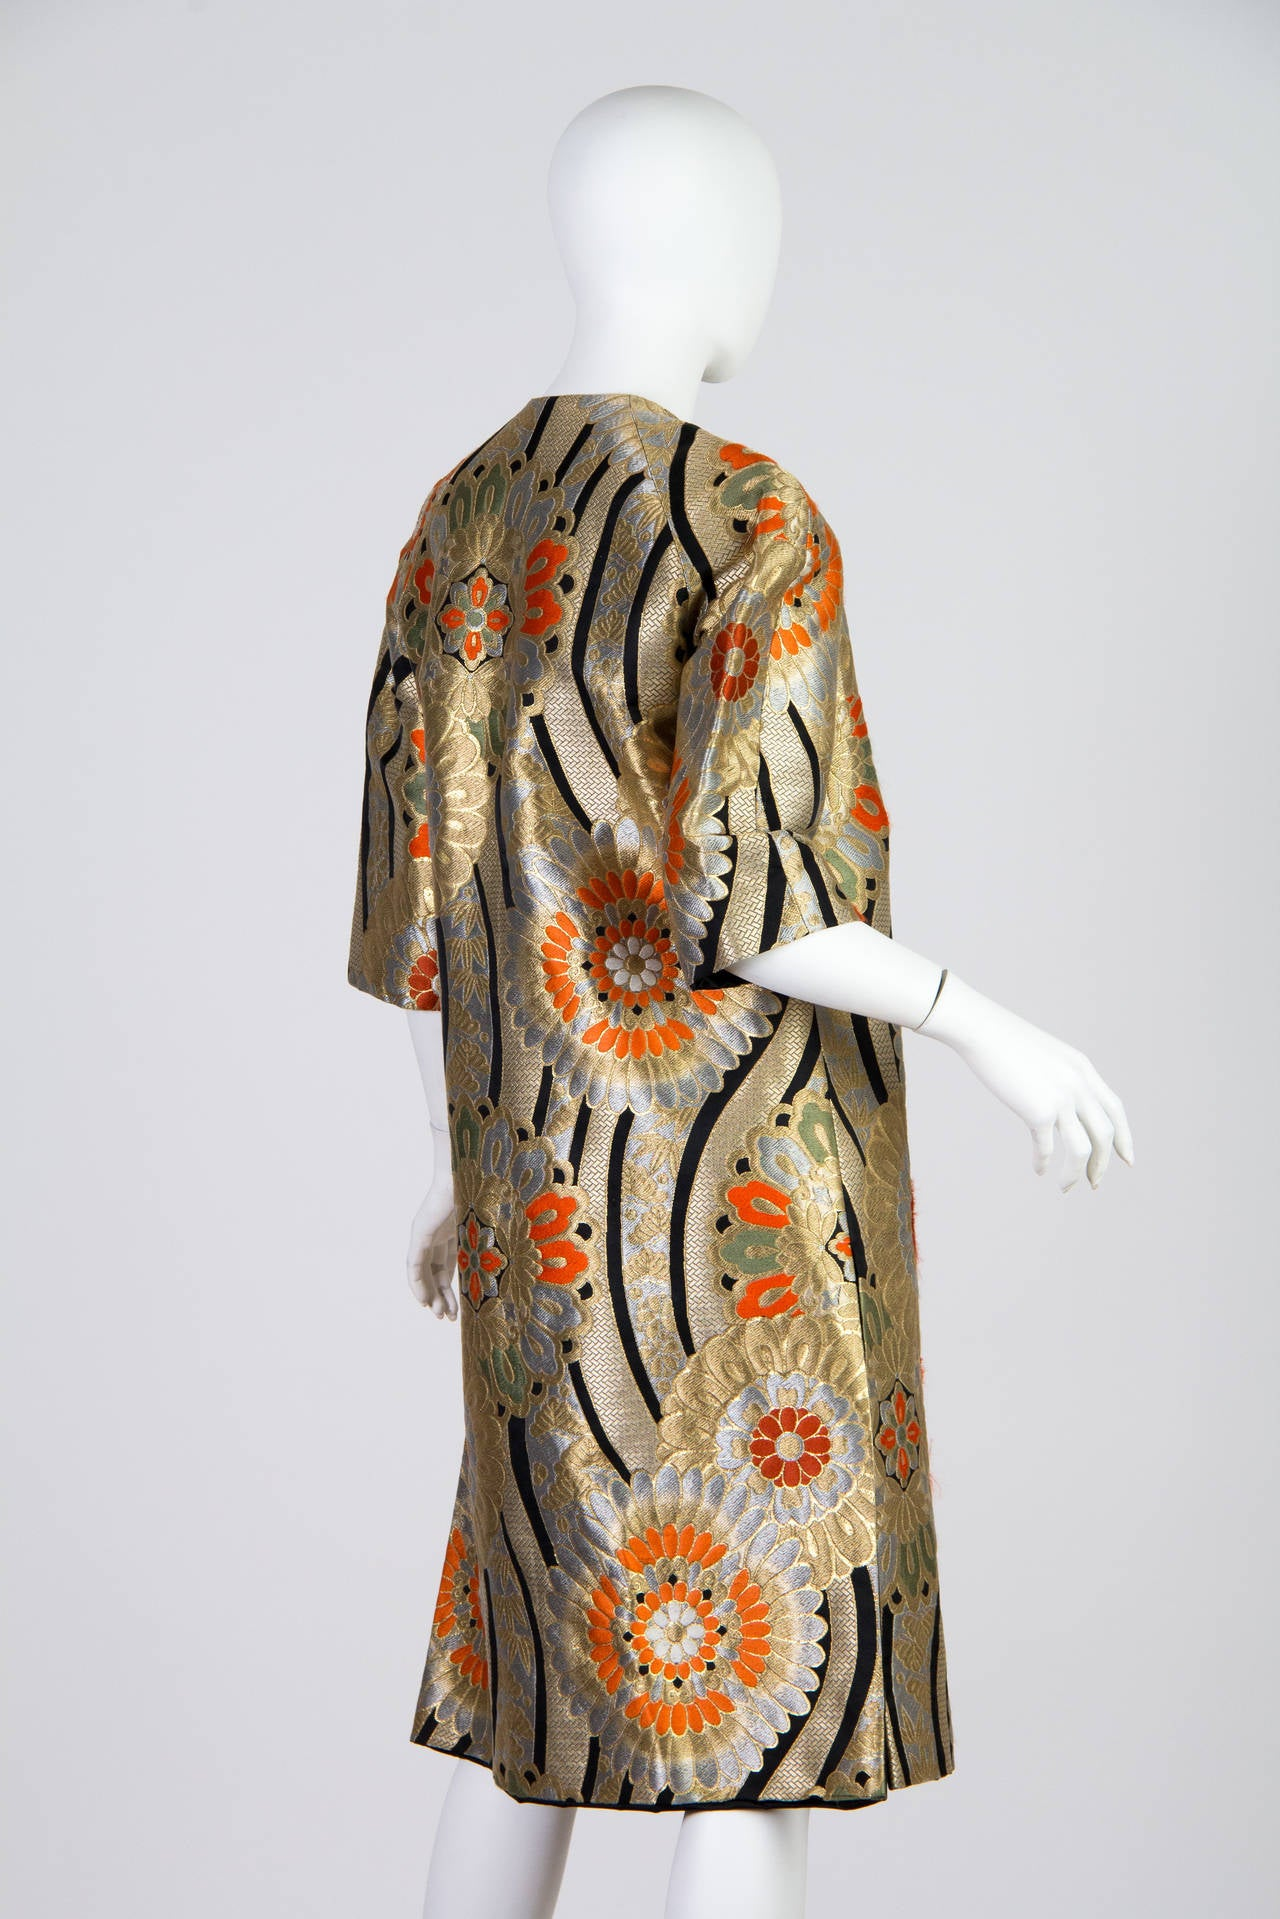 Magical Karabana flowers abound, woven in gold, silver, orange and green. A very special lady in the 1960s saw the magic of this glorious textile and had this beautiful one of a kind opera coat made. The metallic fibers are made with a wash of gold